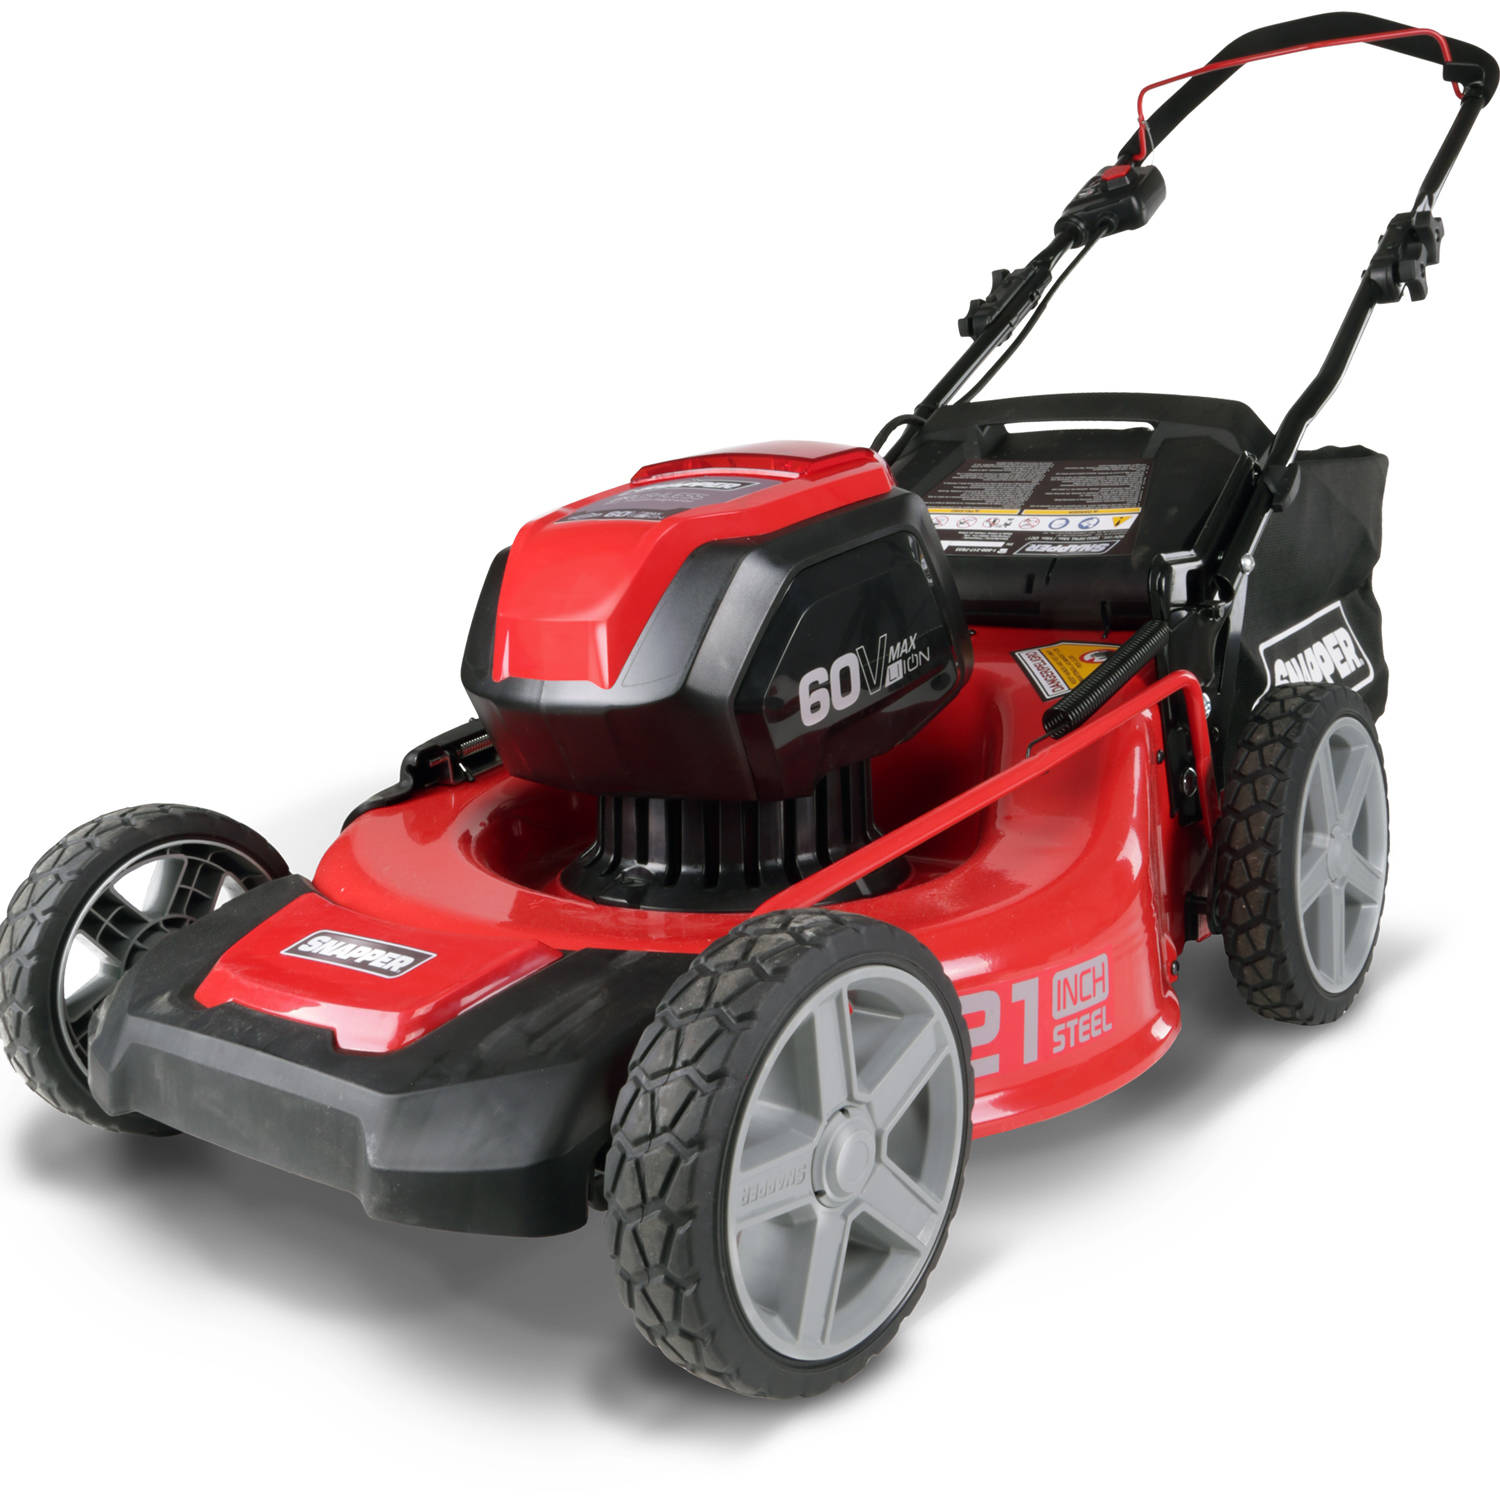 Snapper SP60V 60V Mower Includes 4Ah Battery and Charger